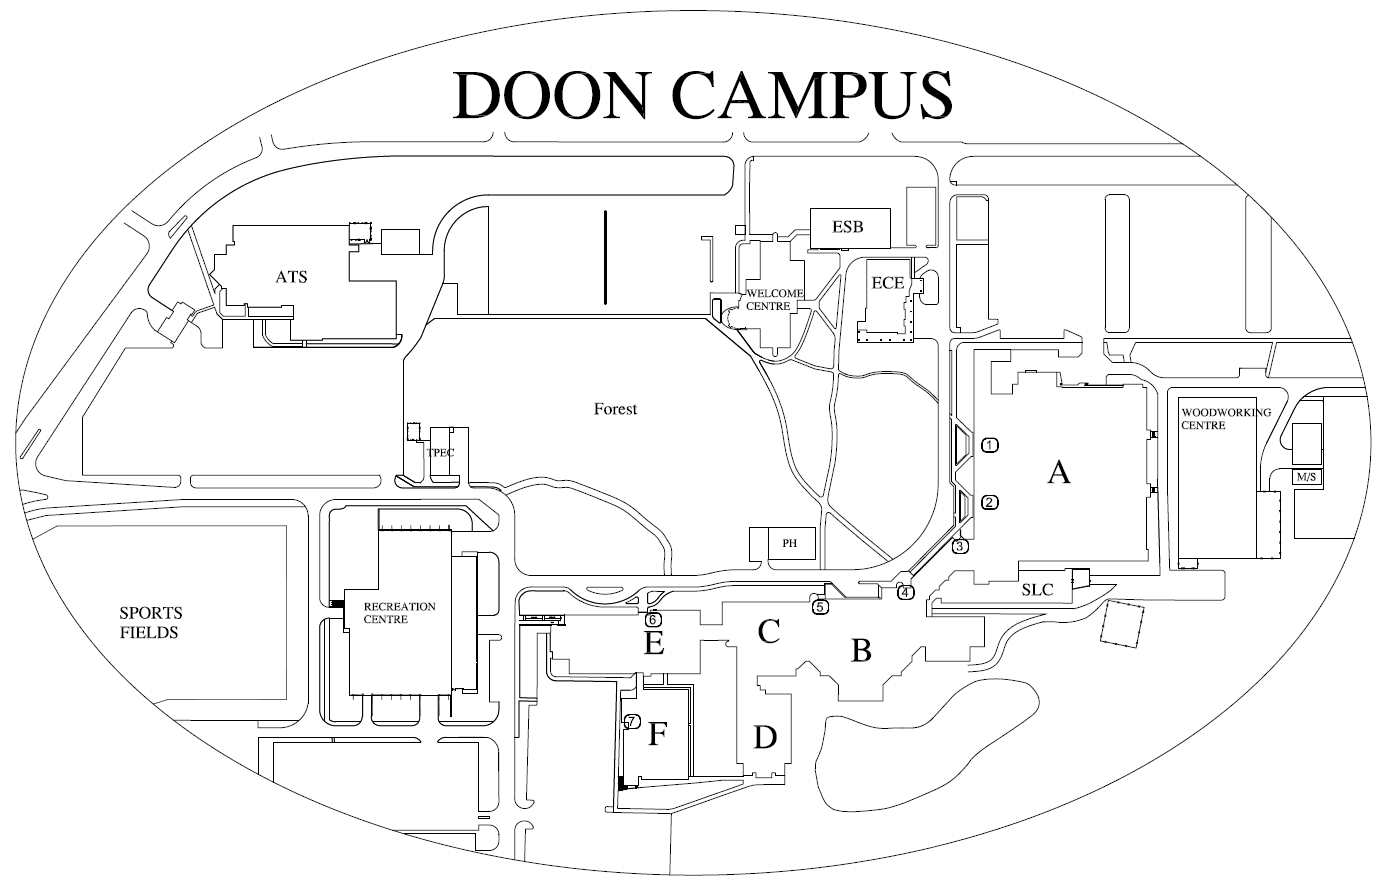 Conestoga College Doon Campus Map Doon Floor Plan | Conestoga College